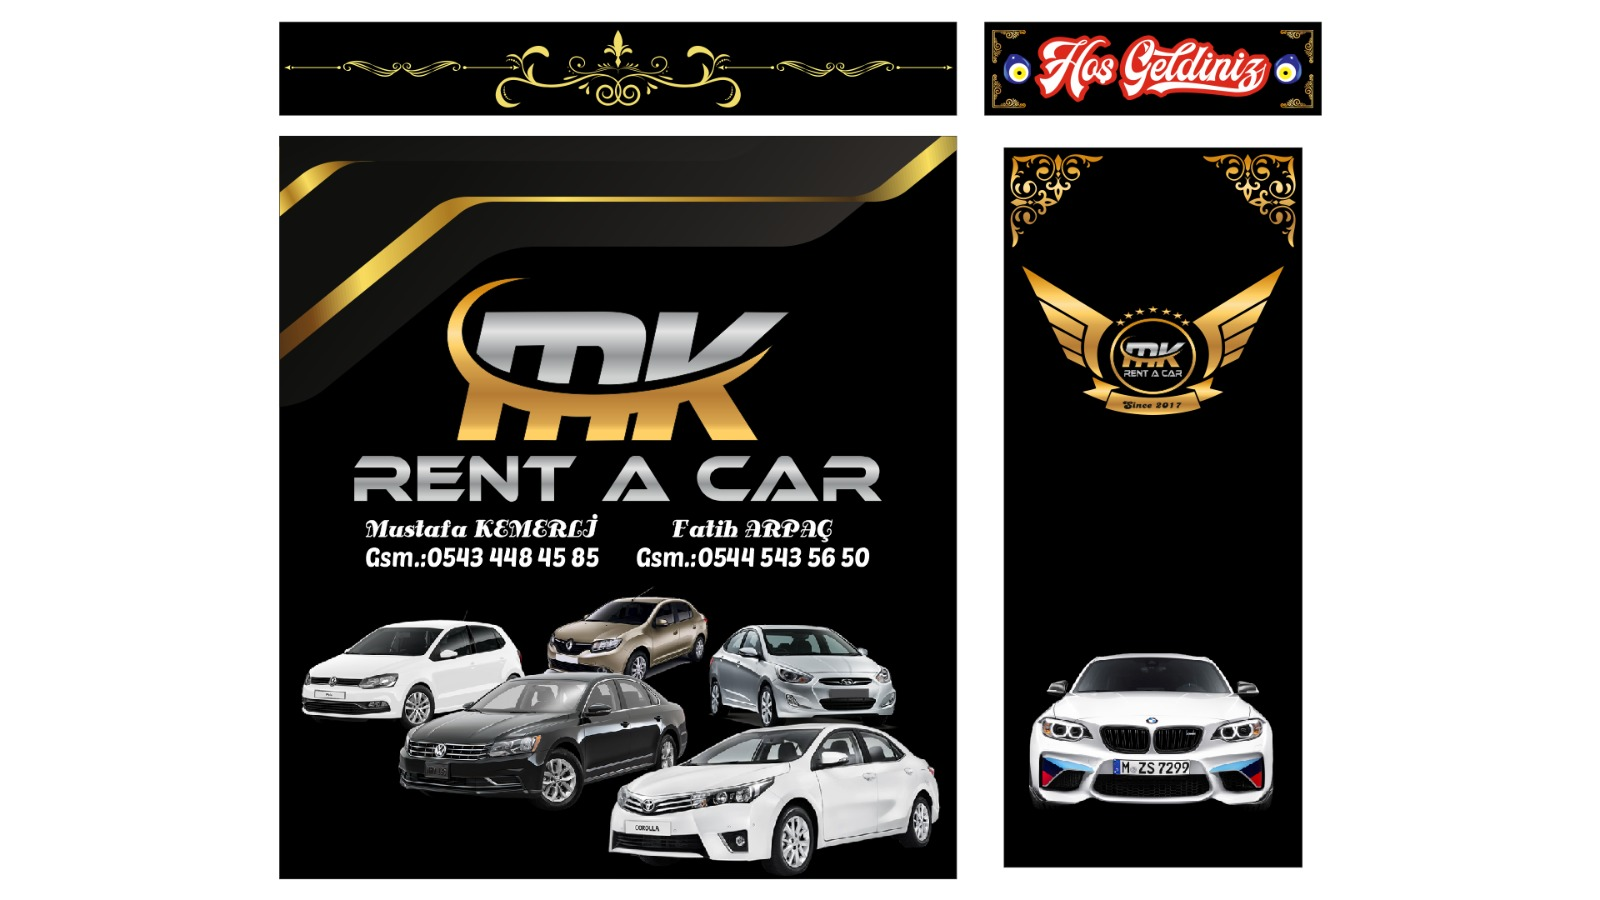 MK RENT A CAR